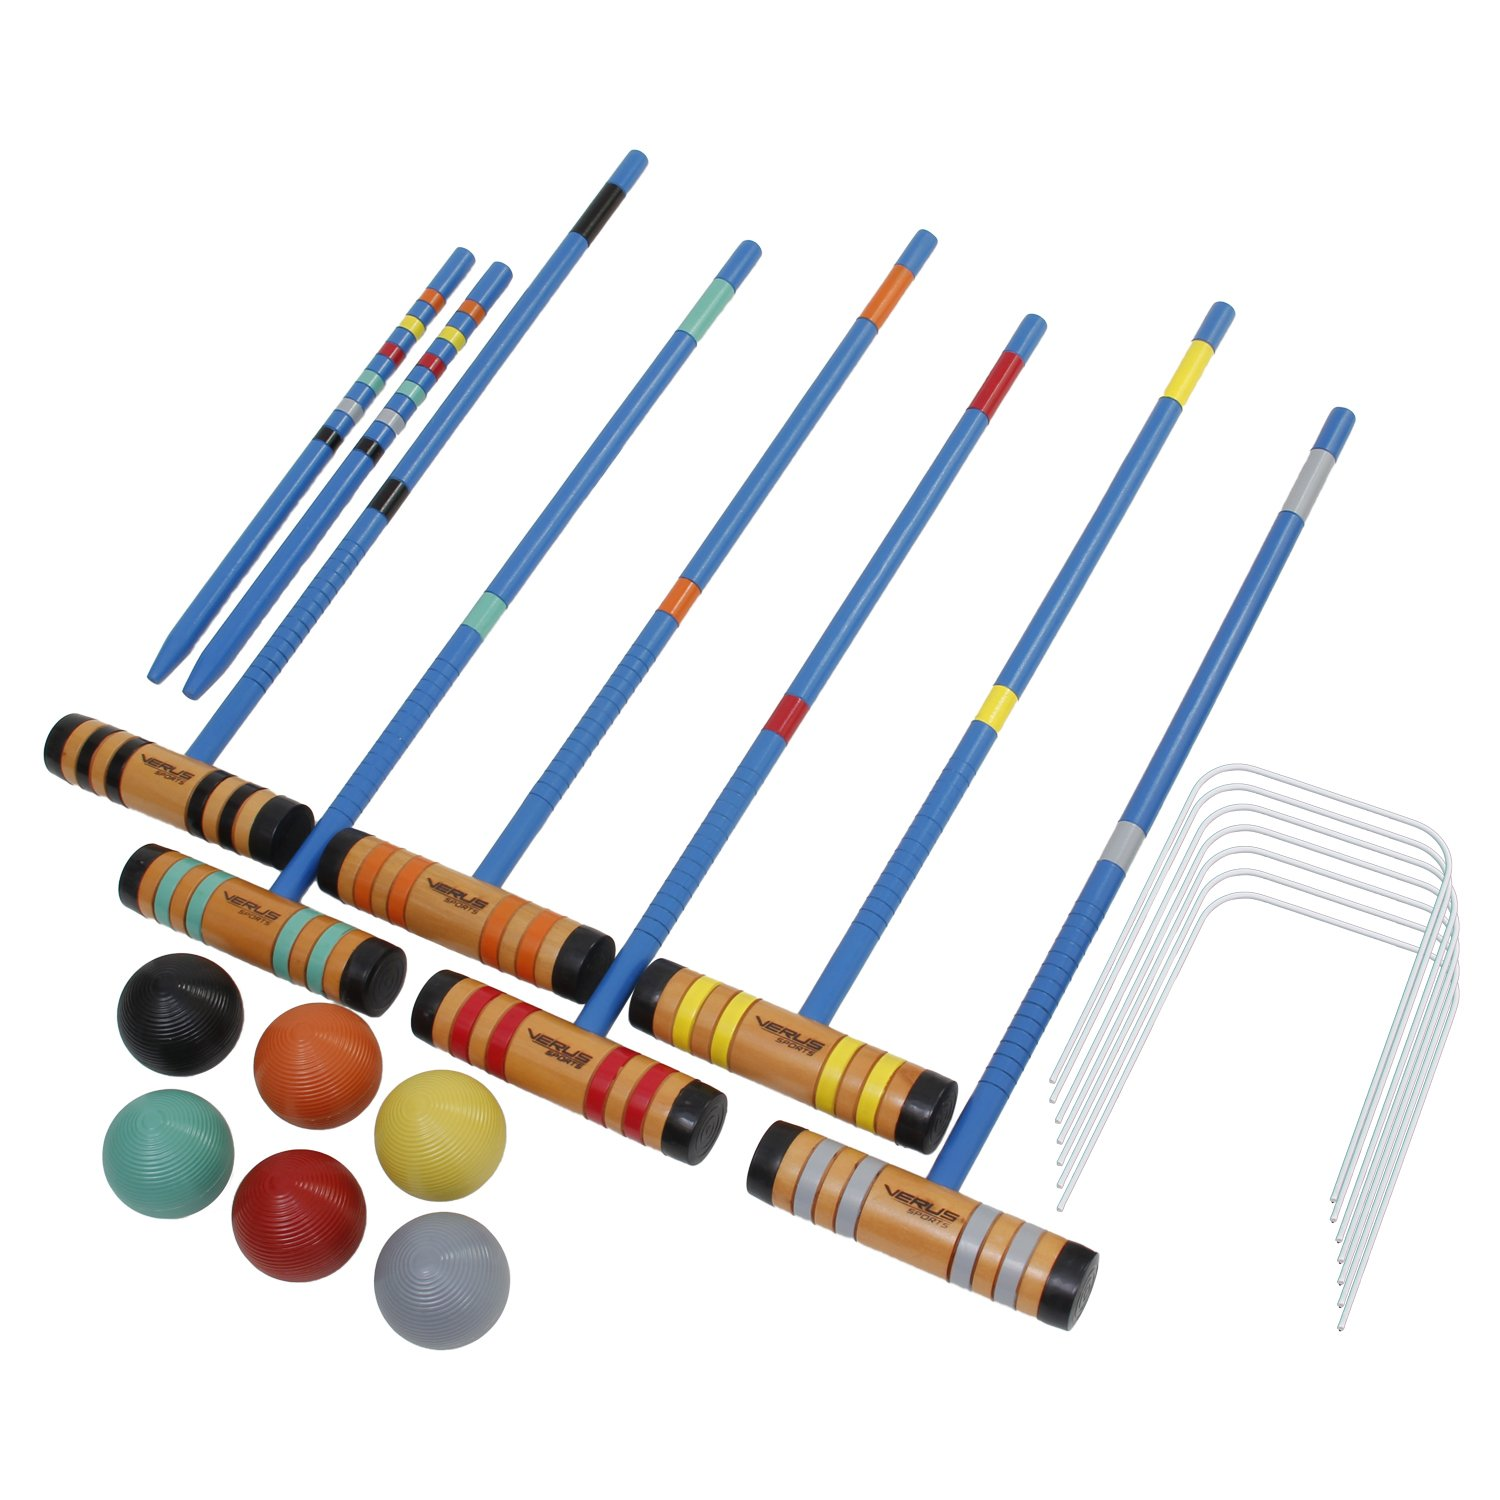 Verus Sports Champion 6-Player Croquet Set Mallet and Carrying Case, 24-Inch by Verus Sports